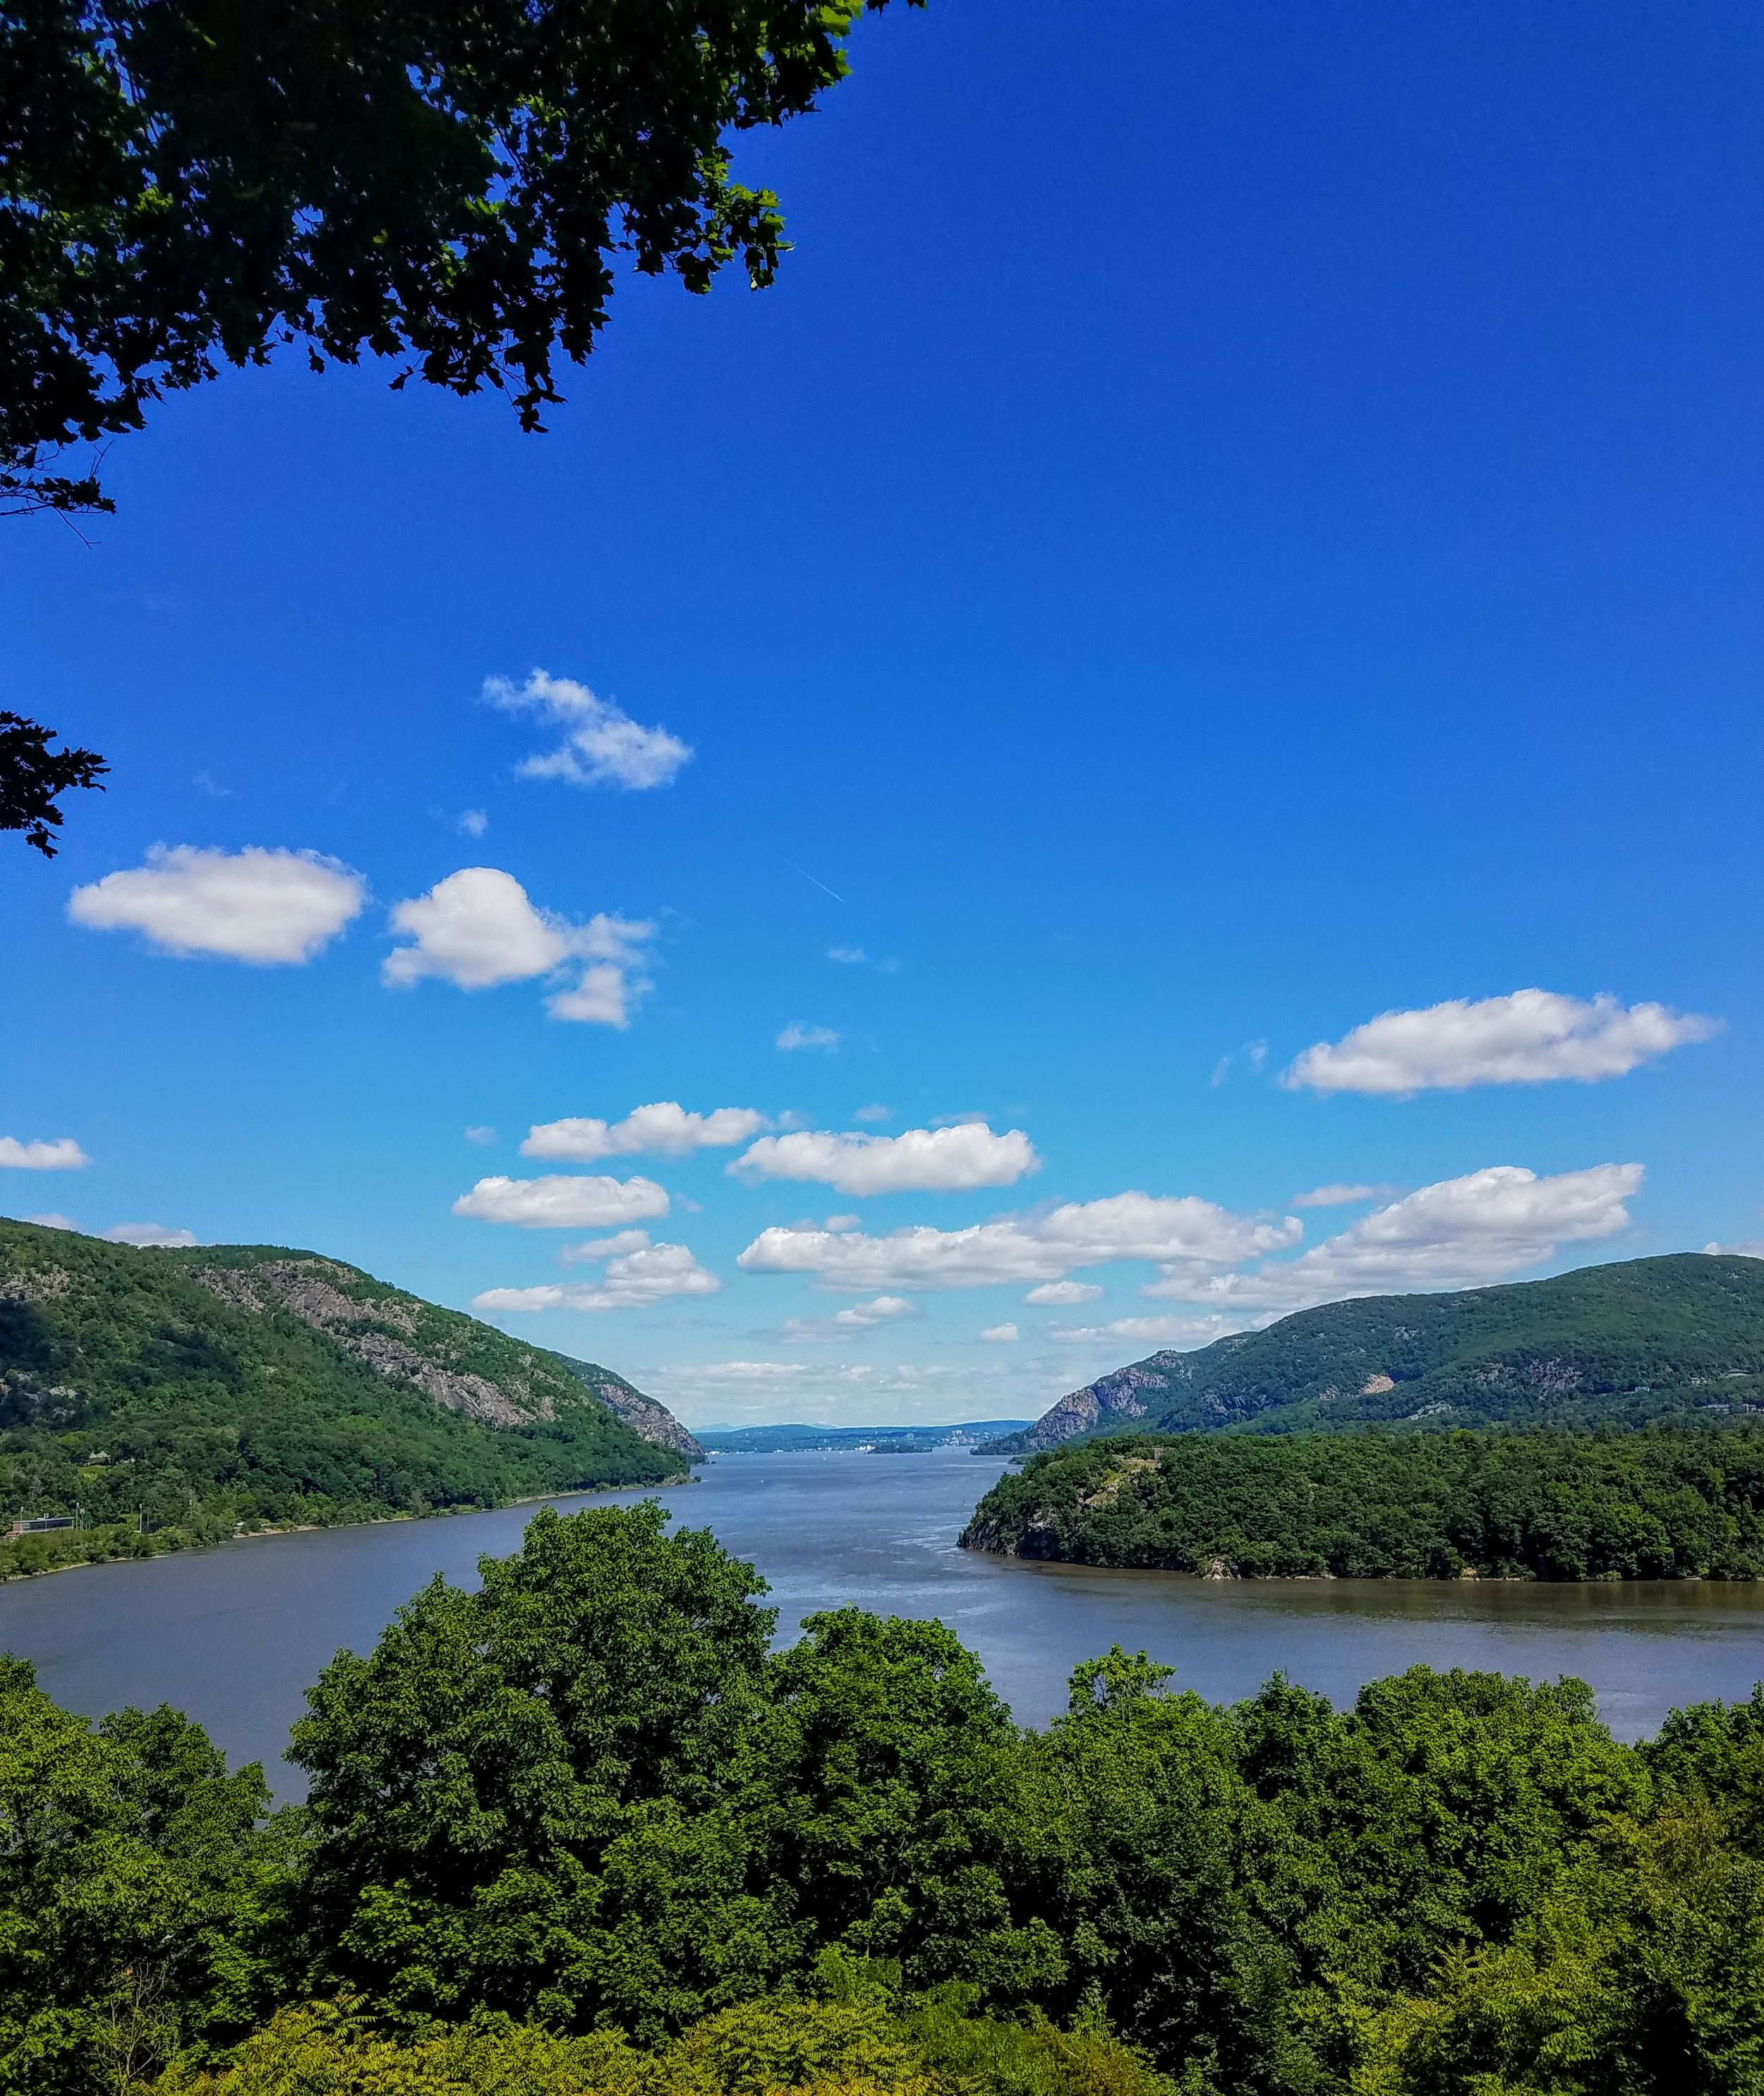 The view of the Hudson River from the grounds at West Point